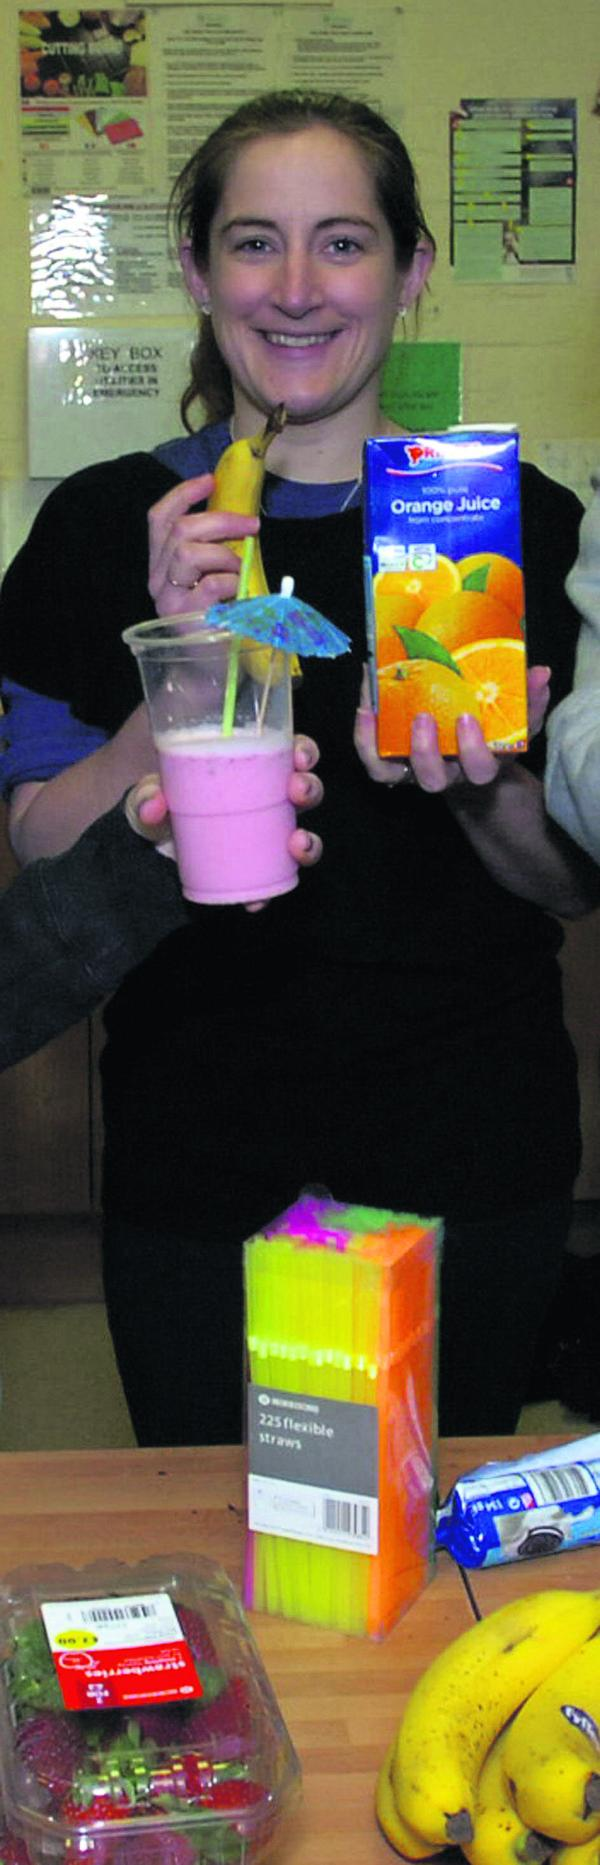 Sally Willox during a smoothie-making  session with youth centre members in 2011